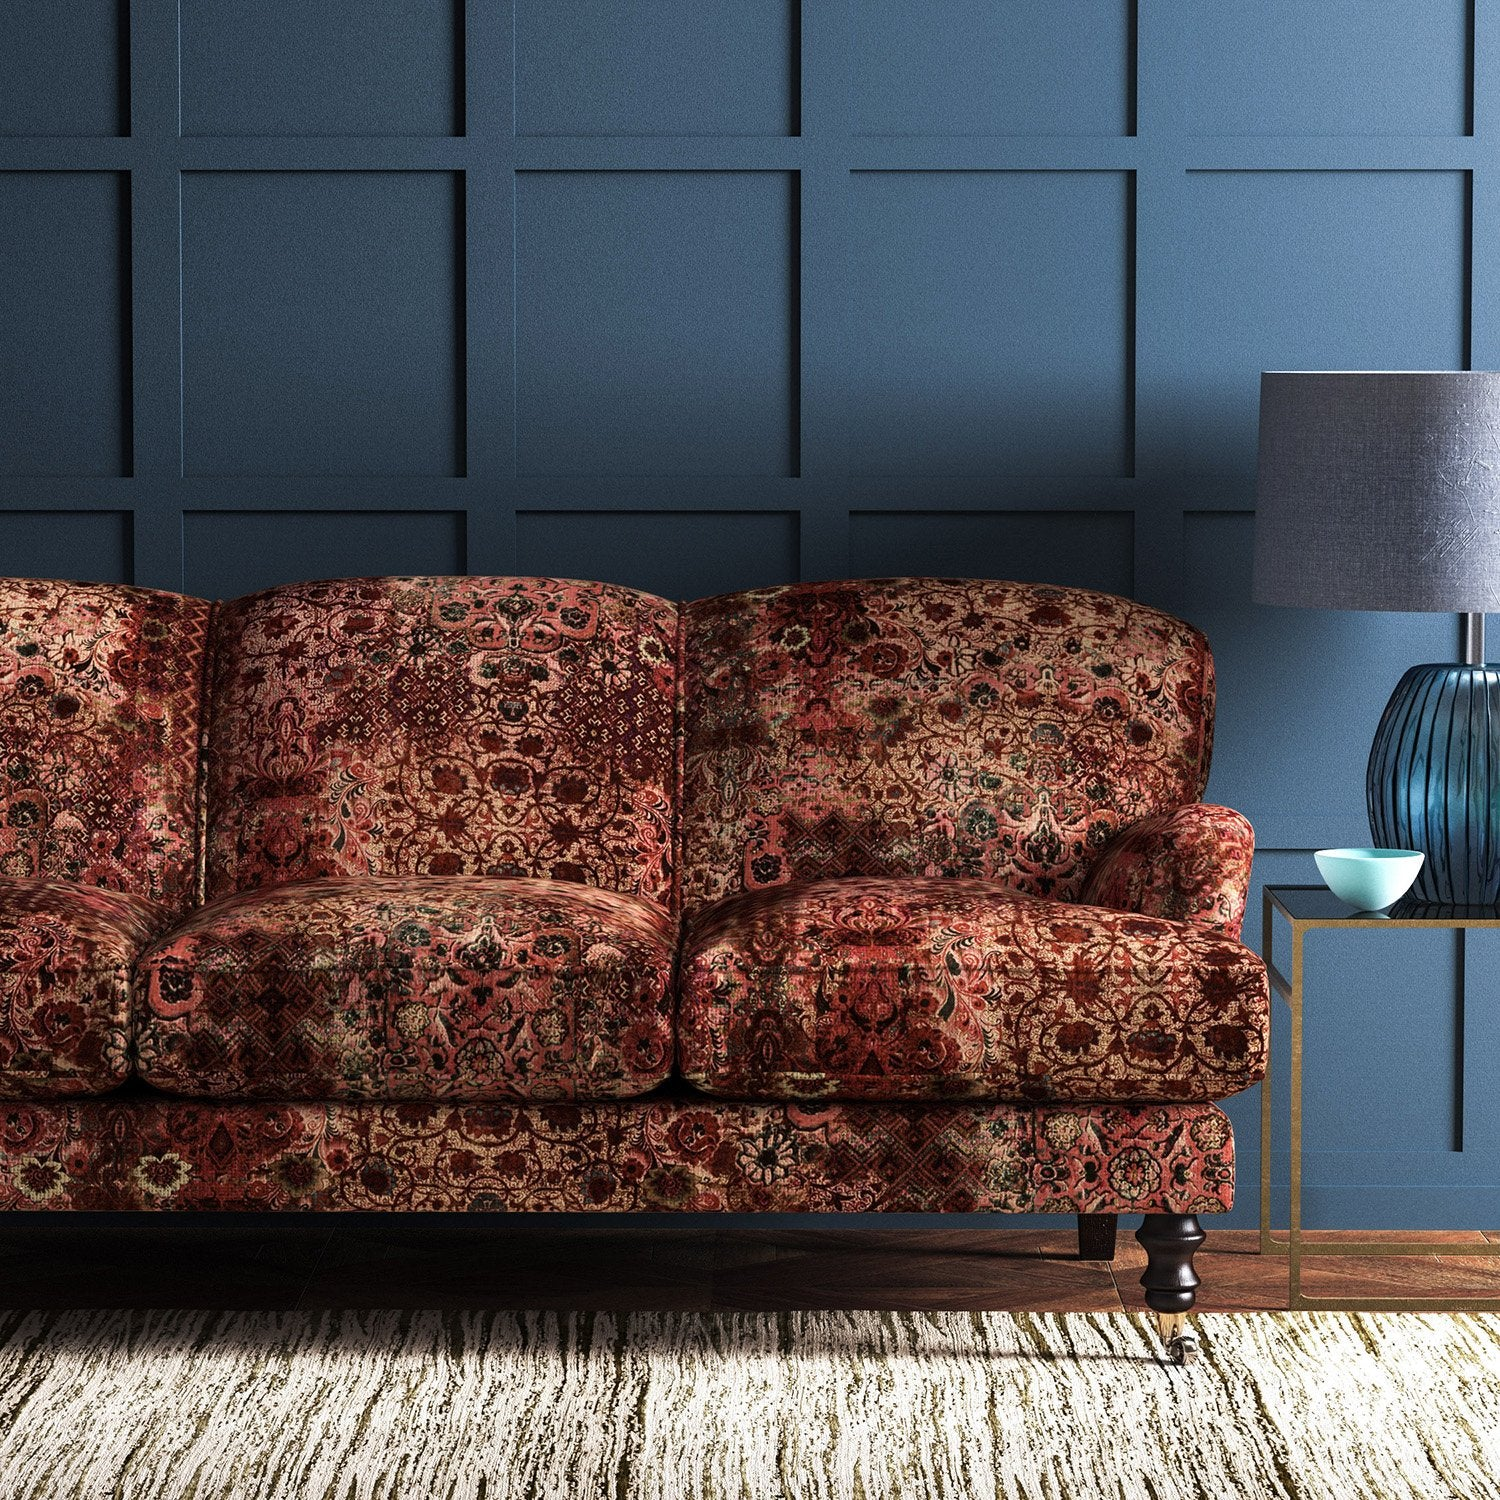 Velvet sofa in a fabric with a carpet design in rich terracotta tones